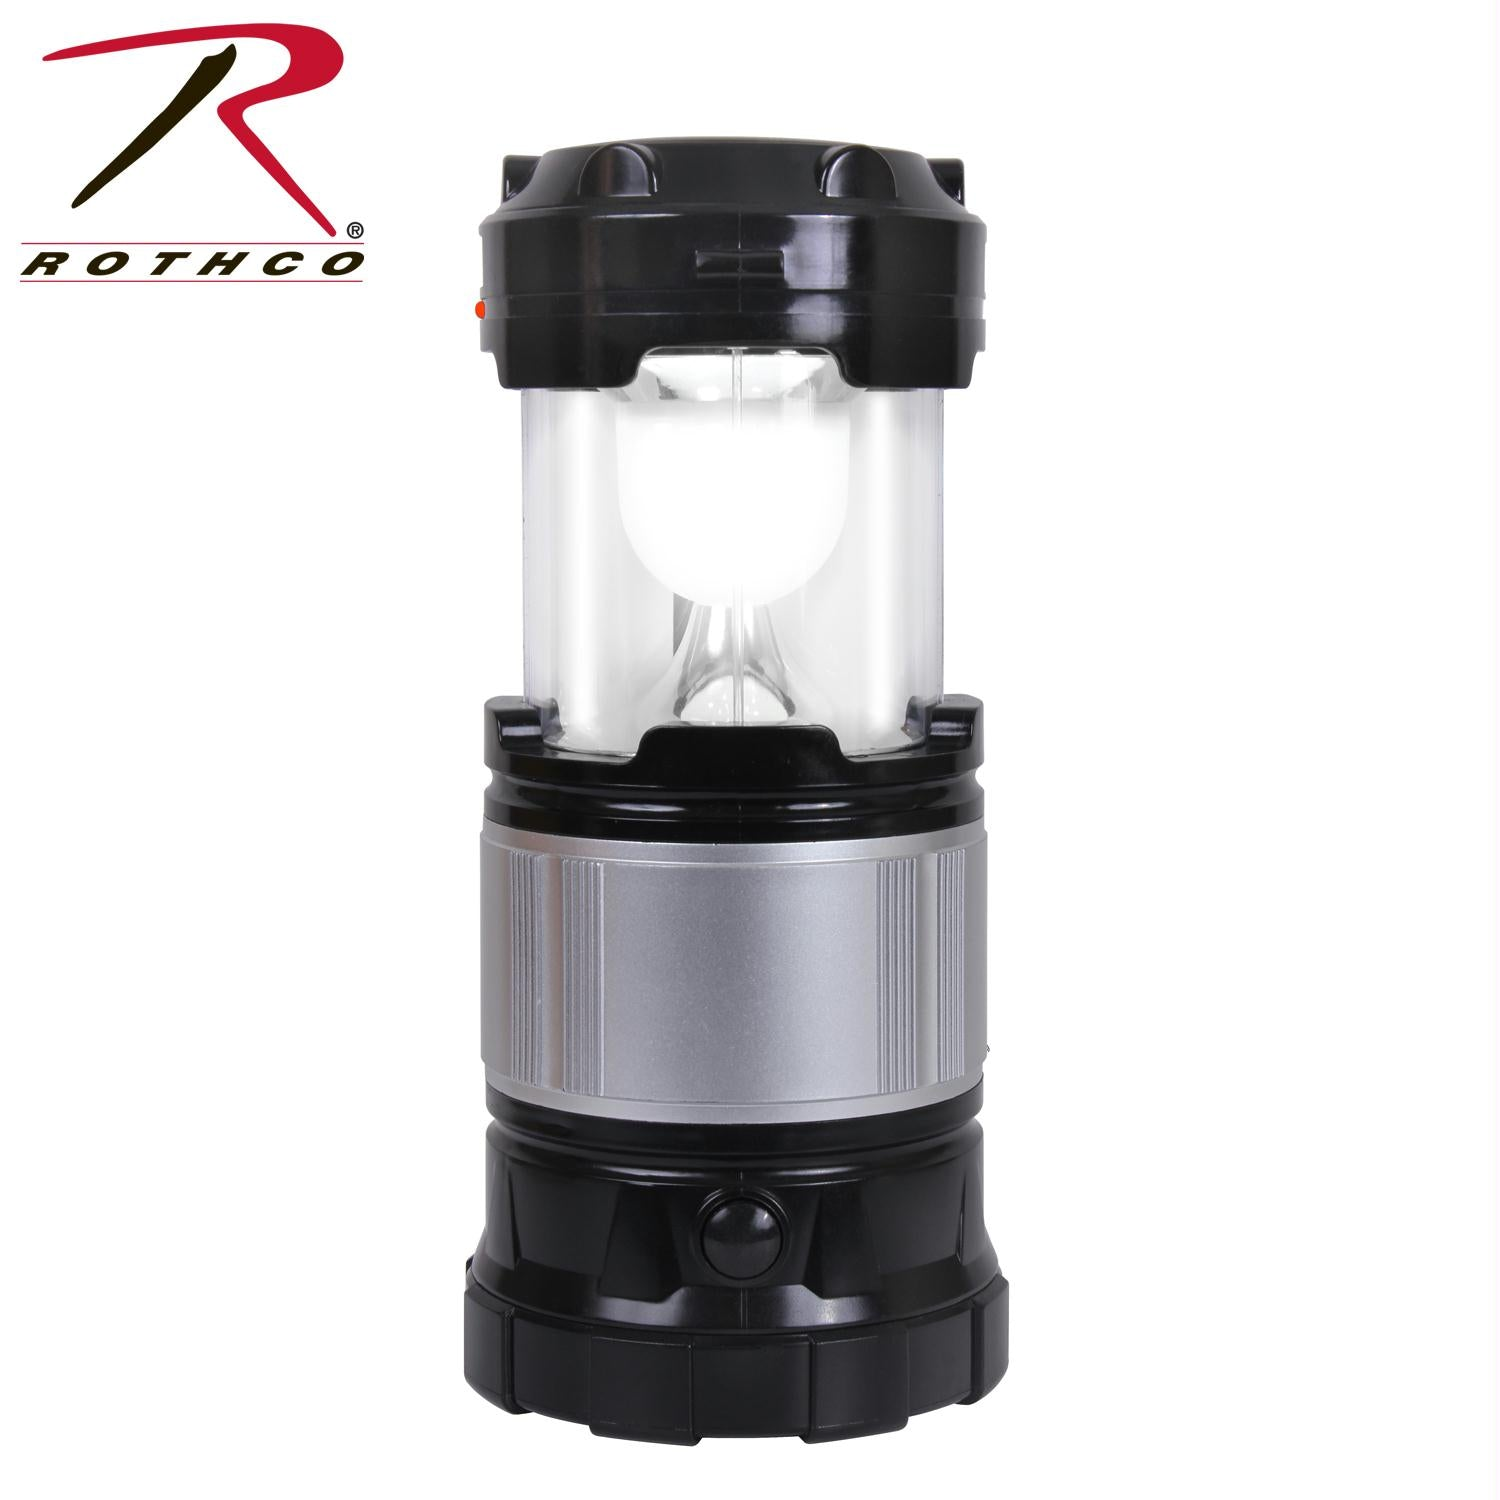 Rothco Solar Lantern Torch and Charger - Black